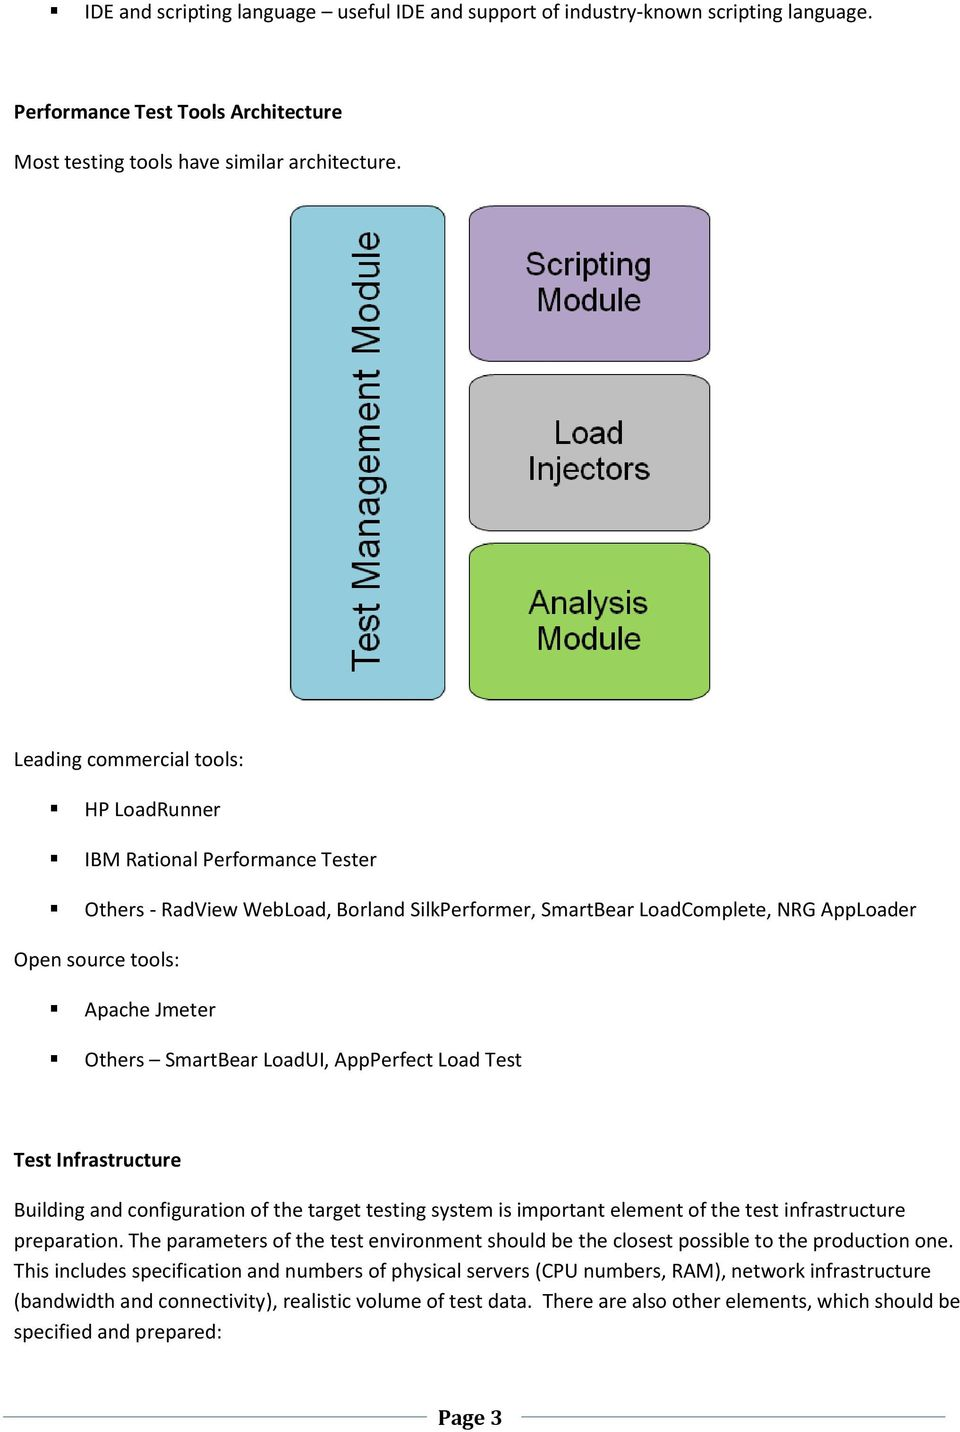 SmartBear LoadUI, AppPerfect Load Test Test Infrastructure Building and configuration of the target testing system is important element of the test infrastructure preparation.